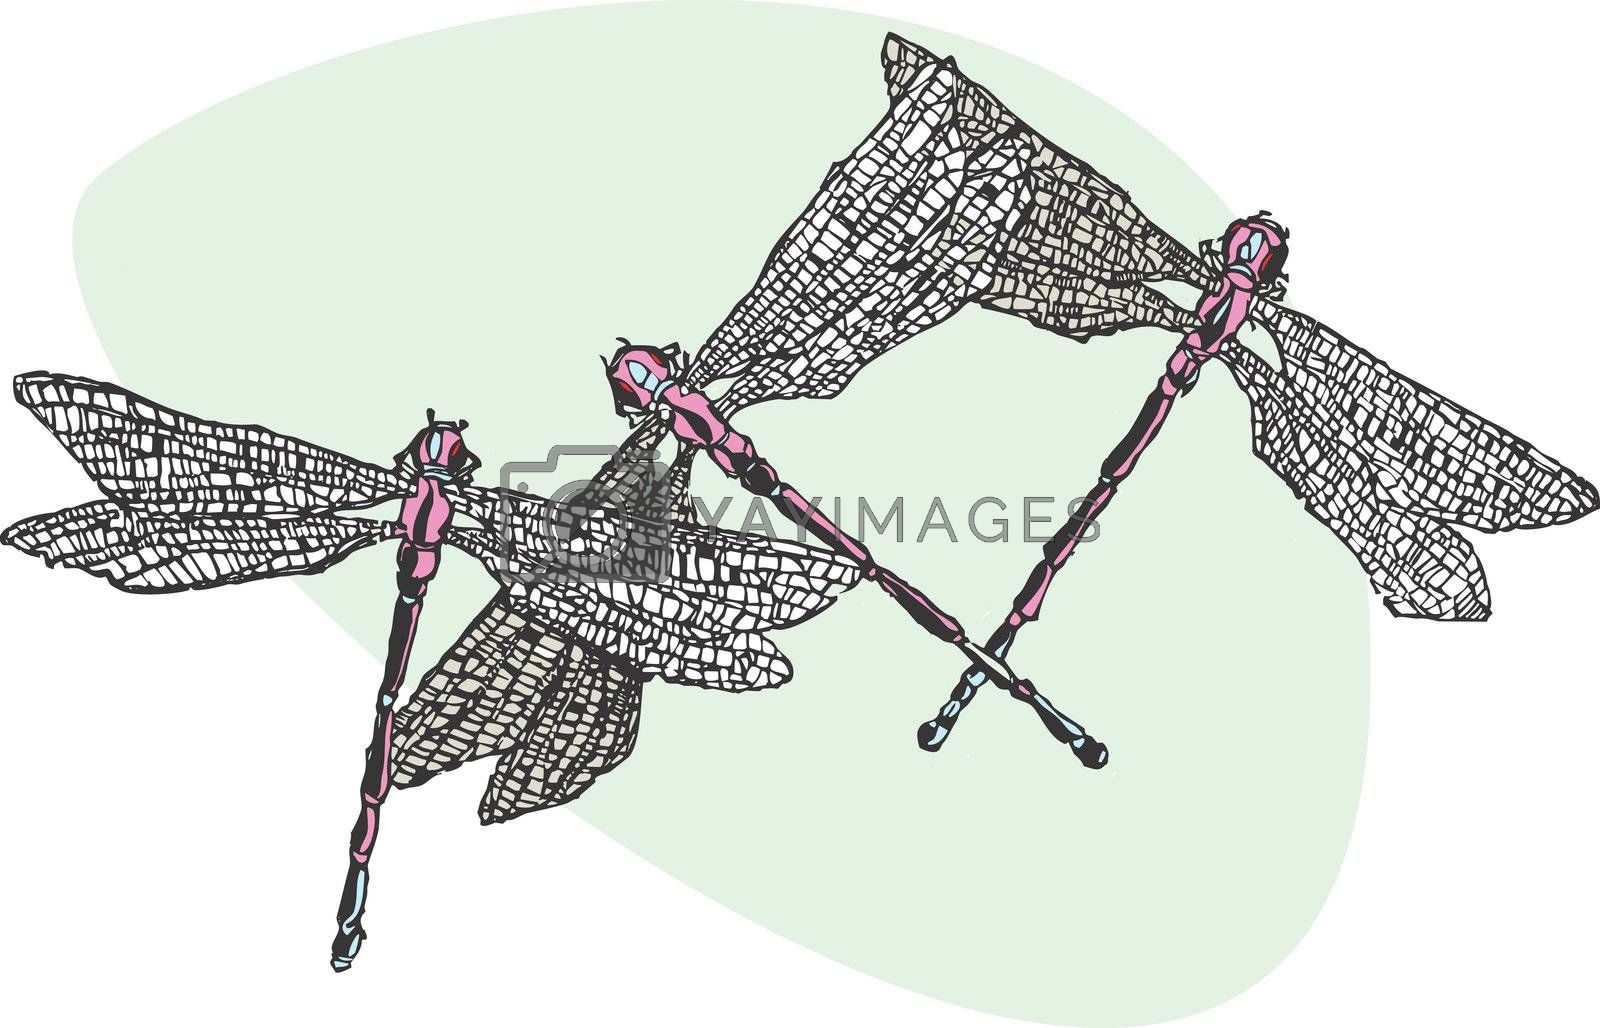 Three purple and blue dragonflies flying together.